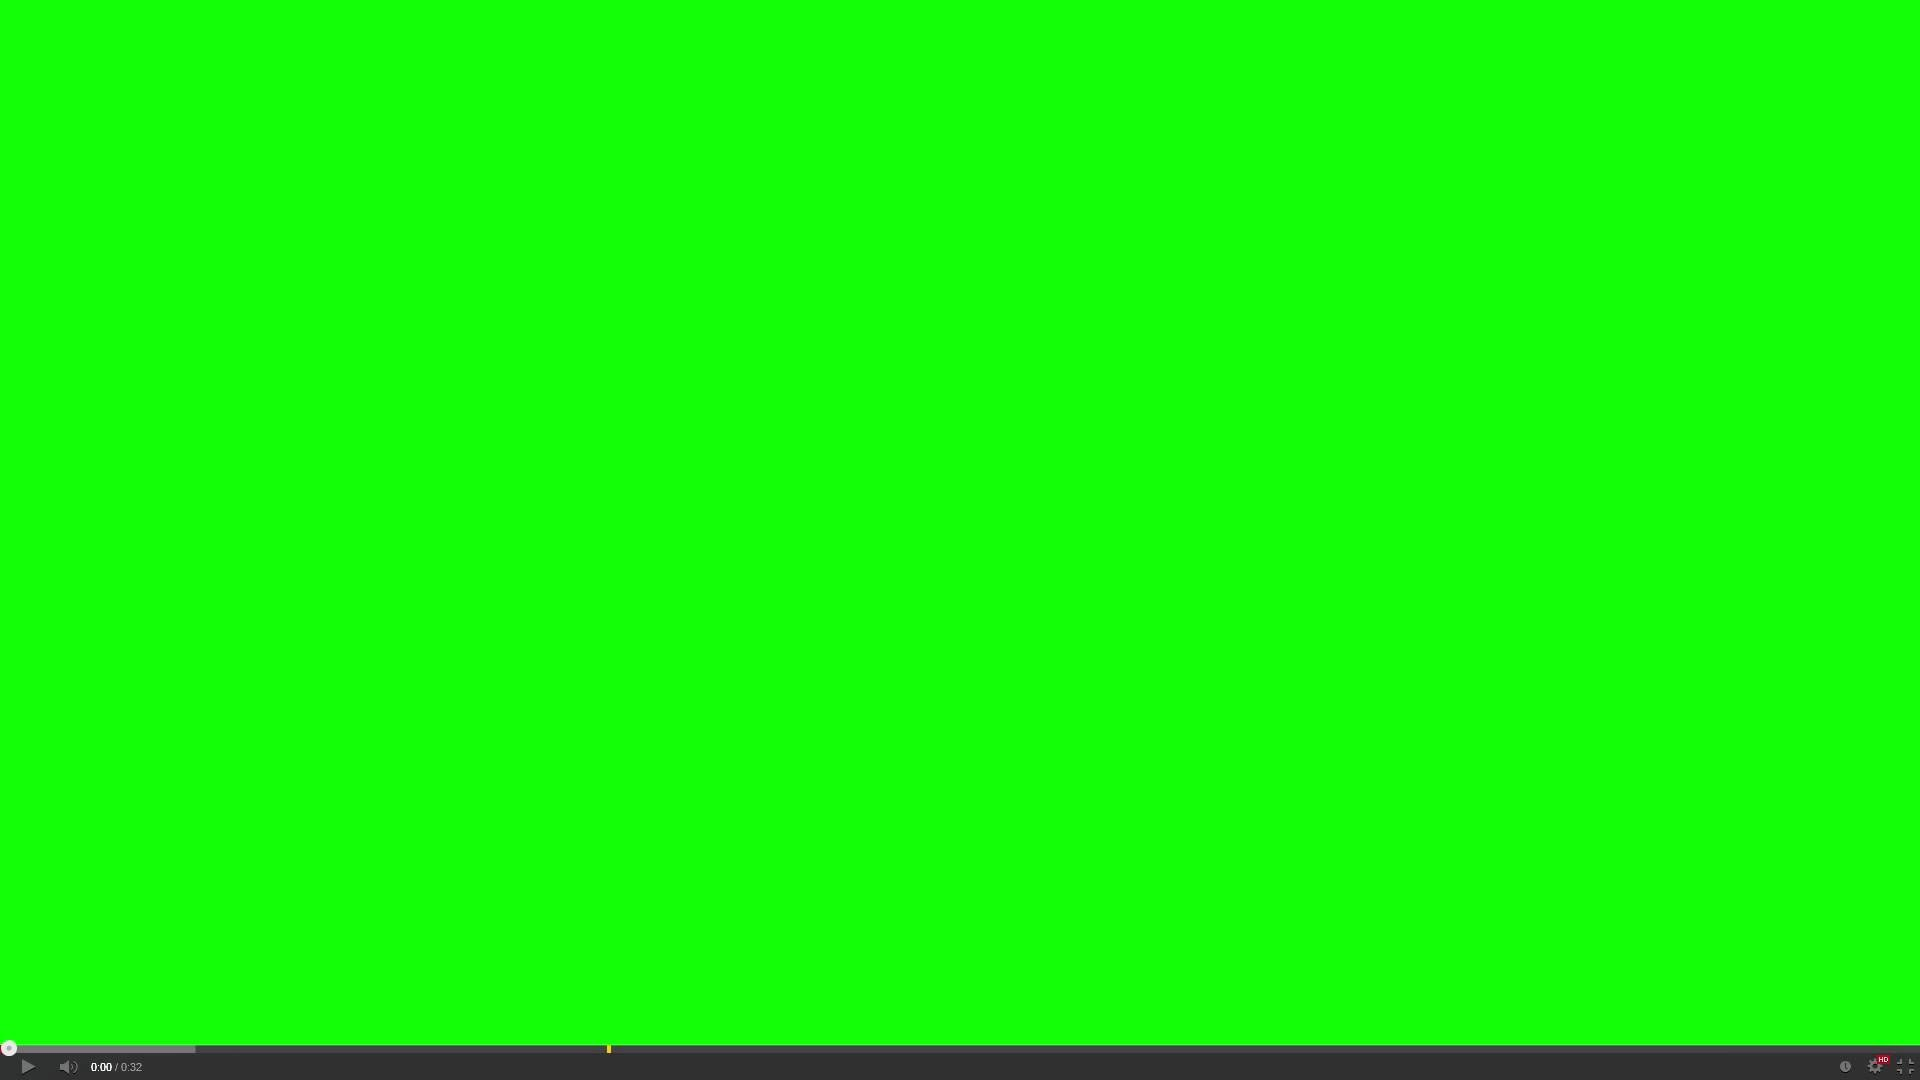 1920x1080 Youtube video player green screen background - FreeHDGreenscreen Footage